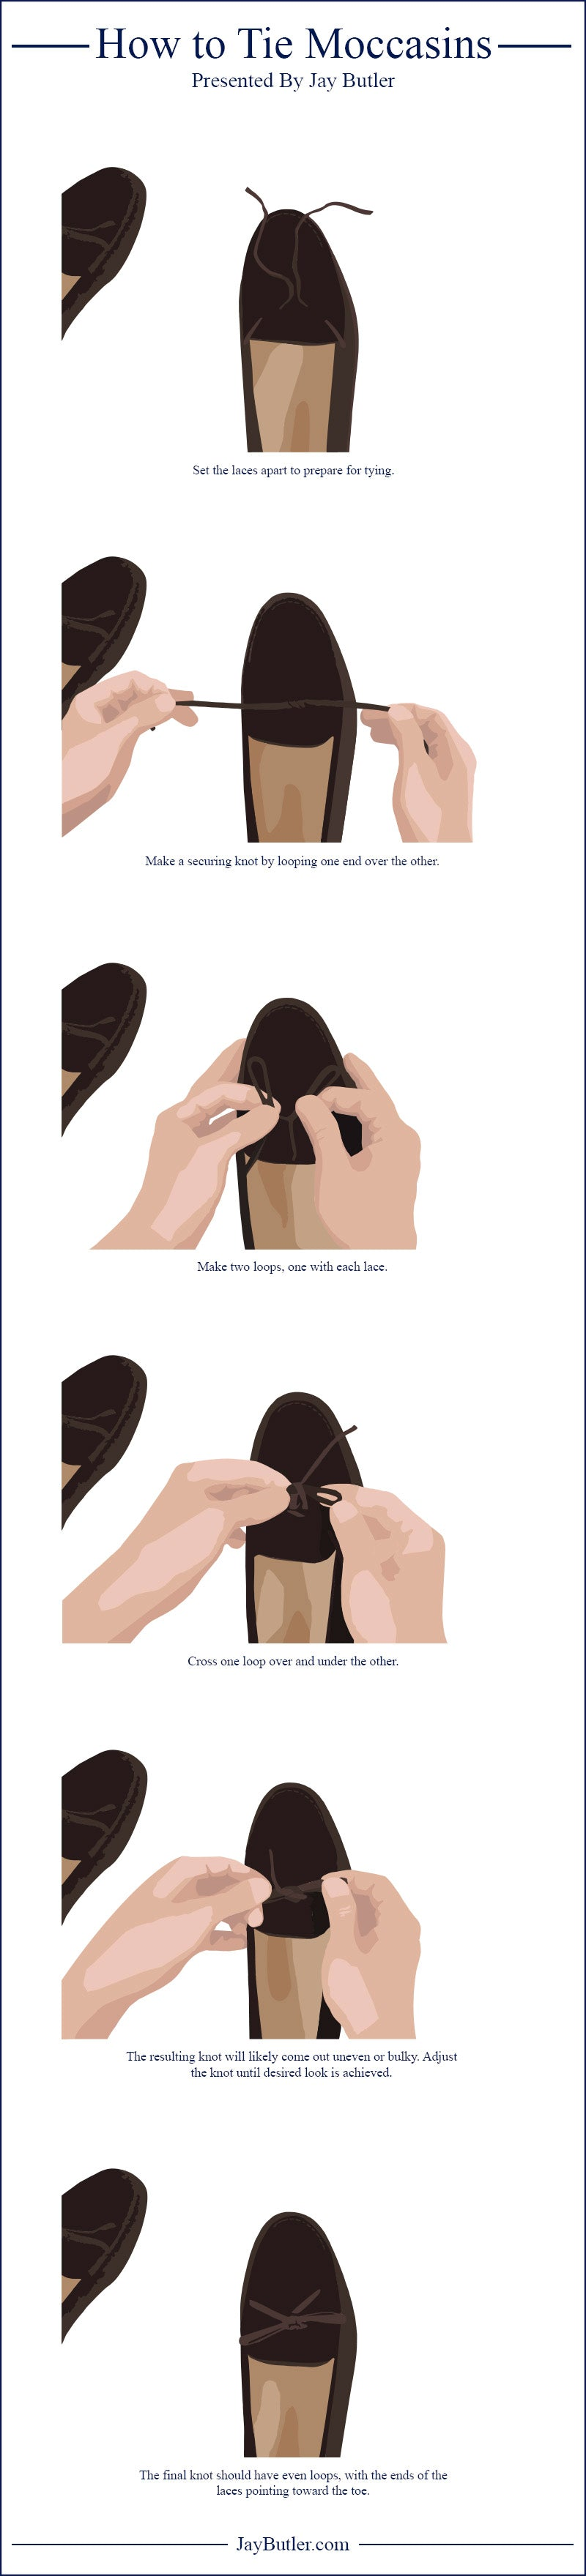 how to tie moccasins infographic